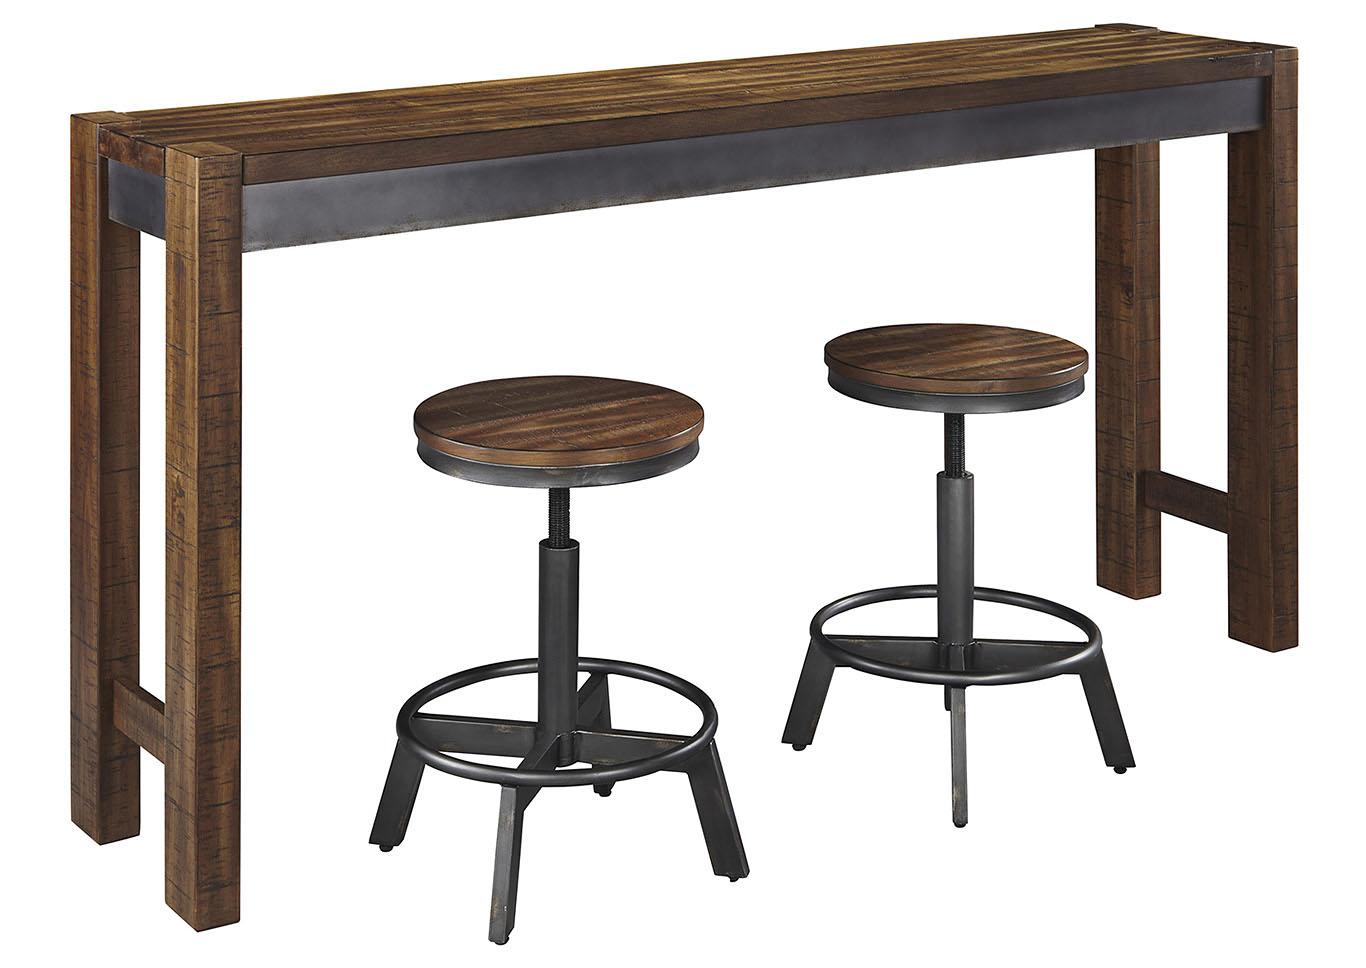 Torjin Two-tone Brown Long Counter Table w/2 Stools,Signature Design By Ashley